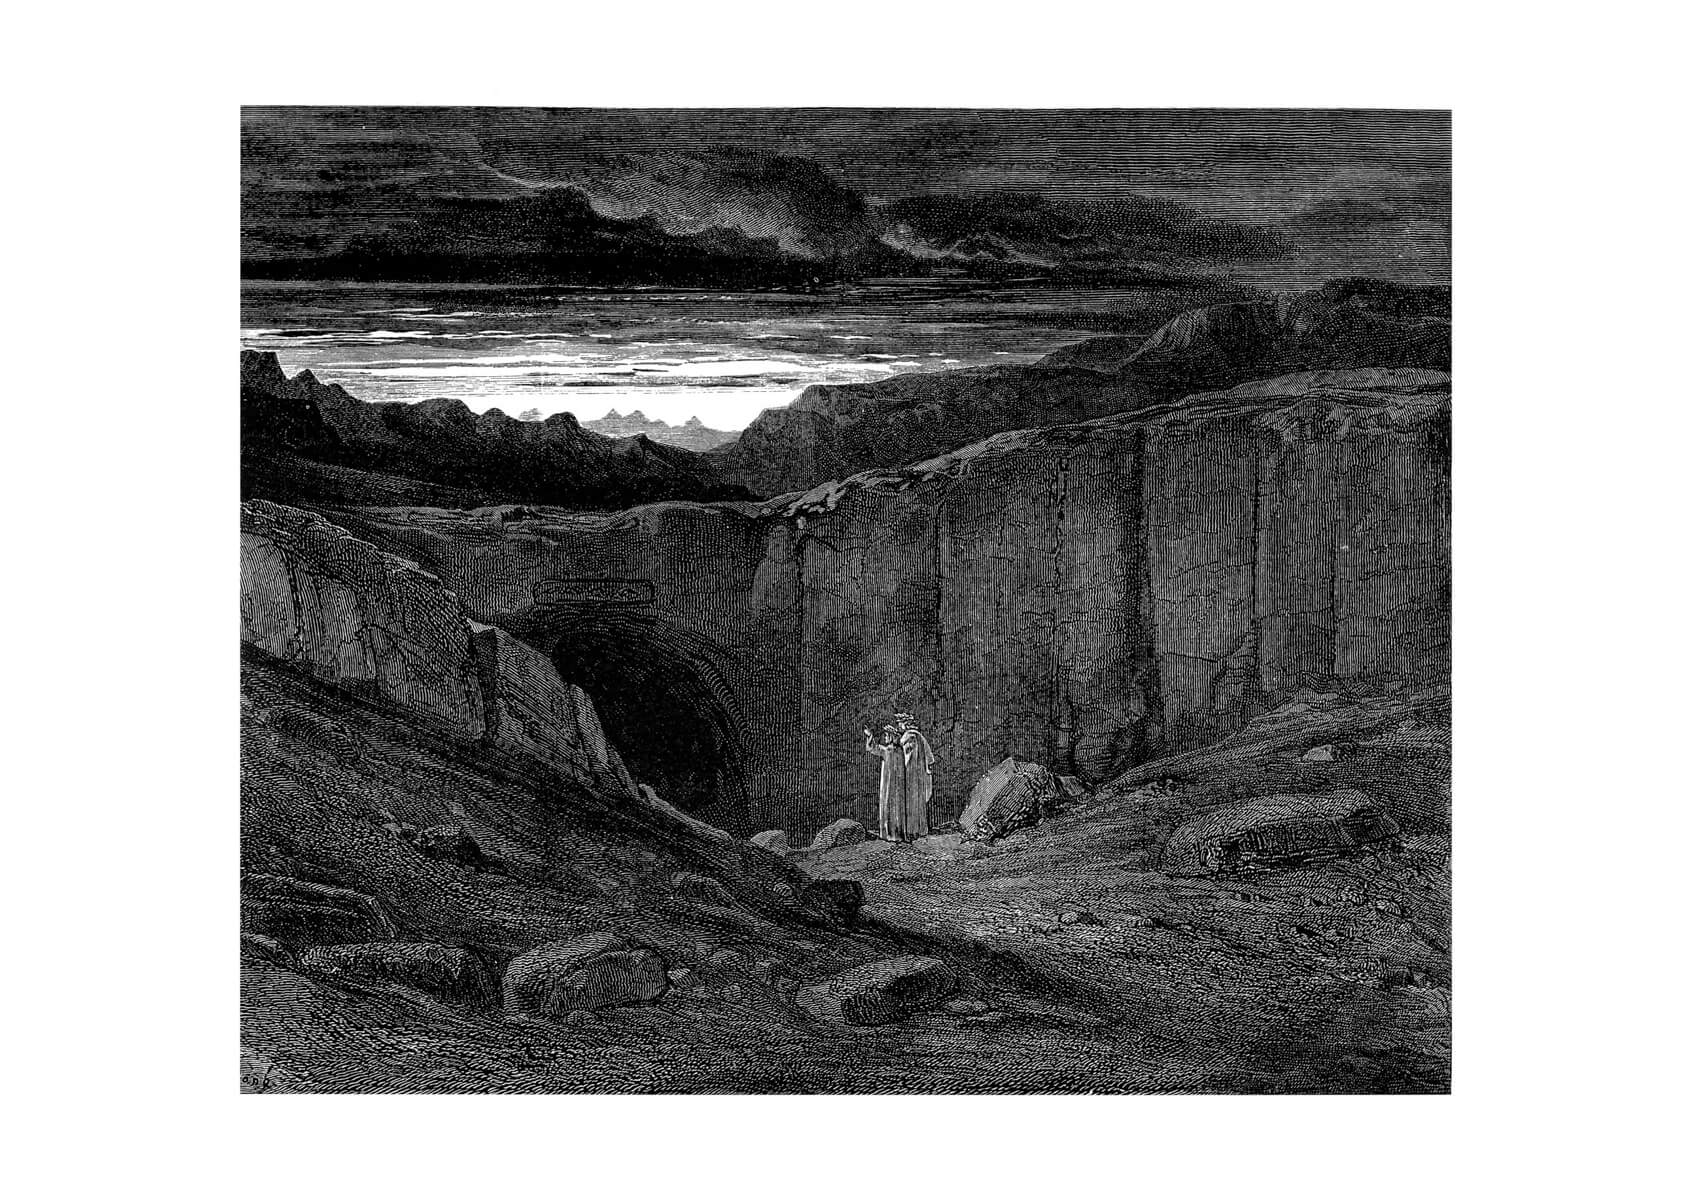 Gustave Doré - Dante's Inferno - Abandon All Who Enter